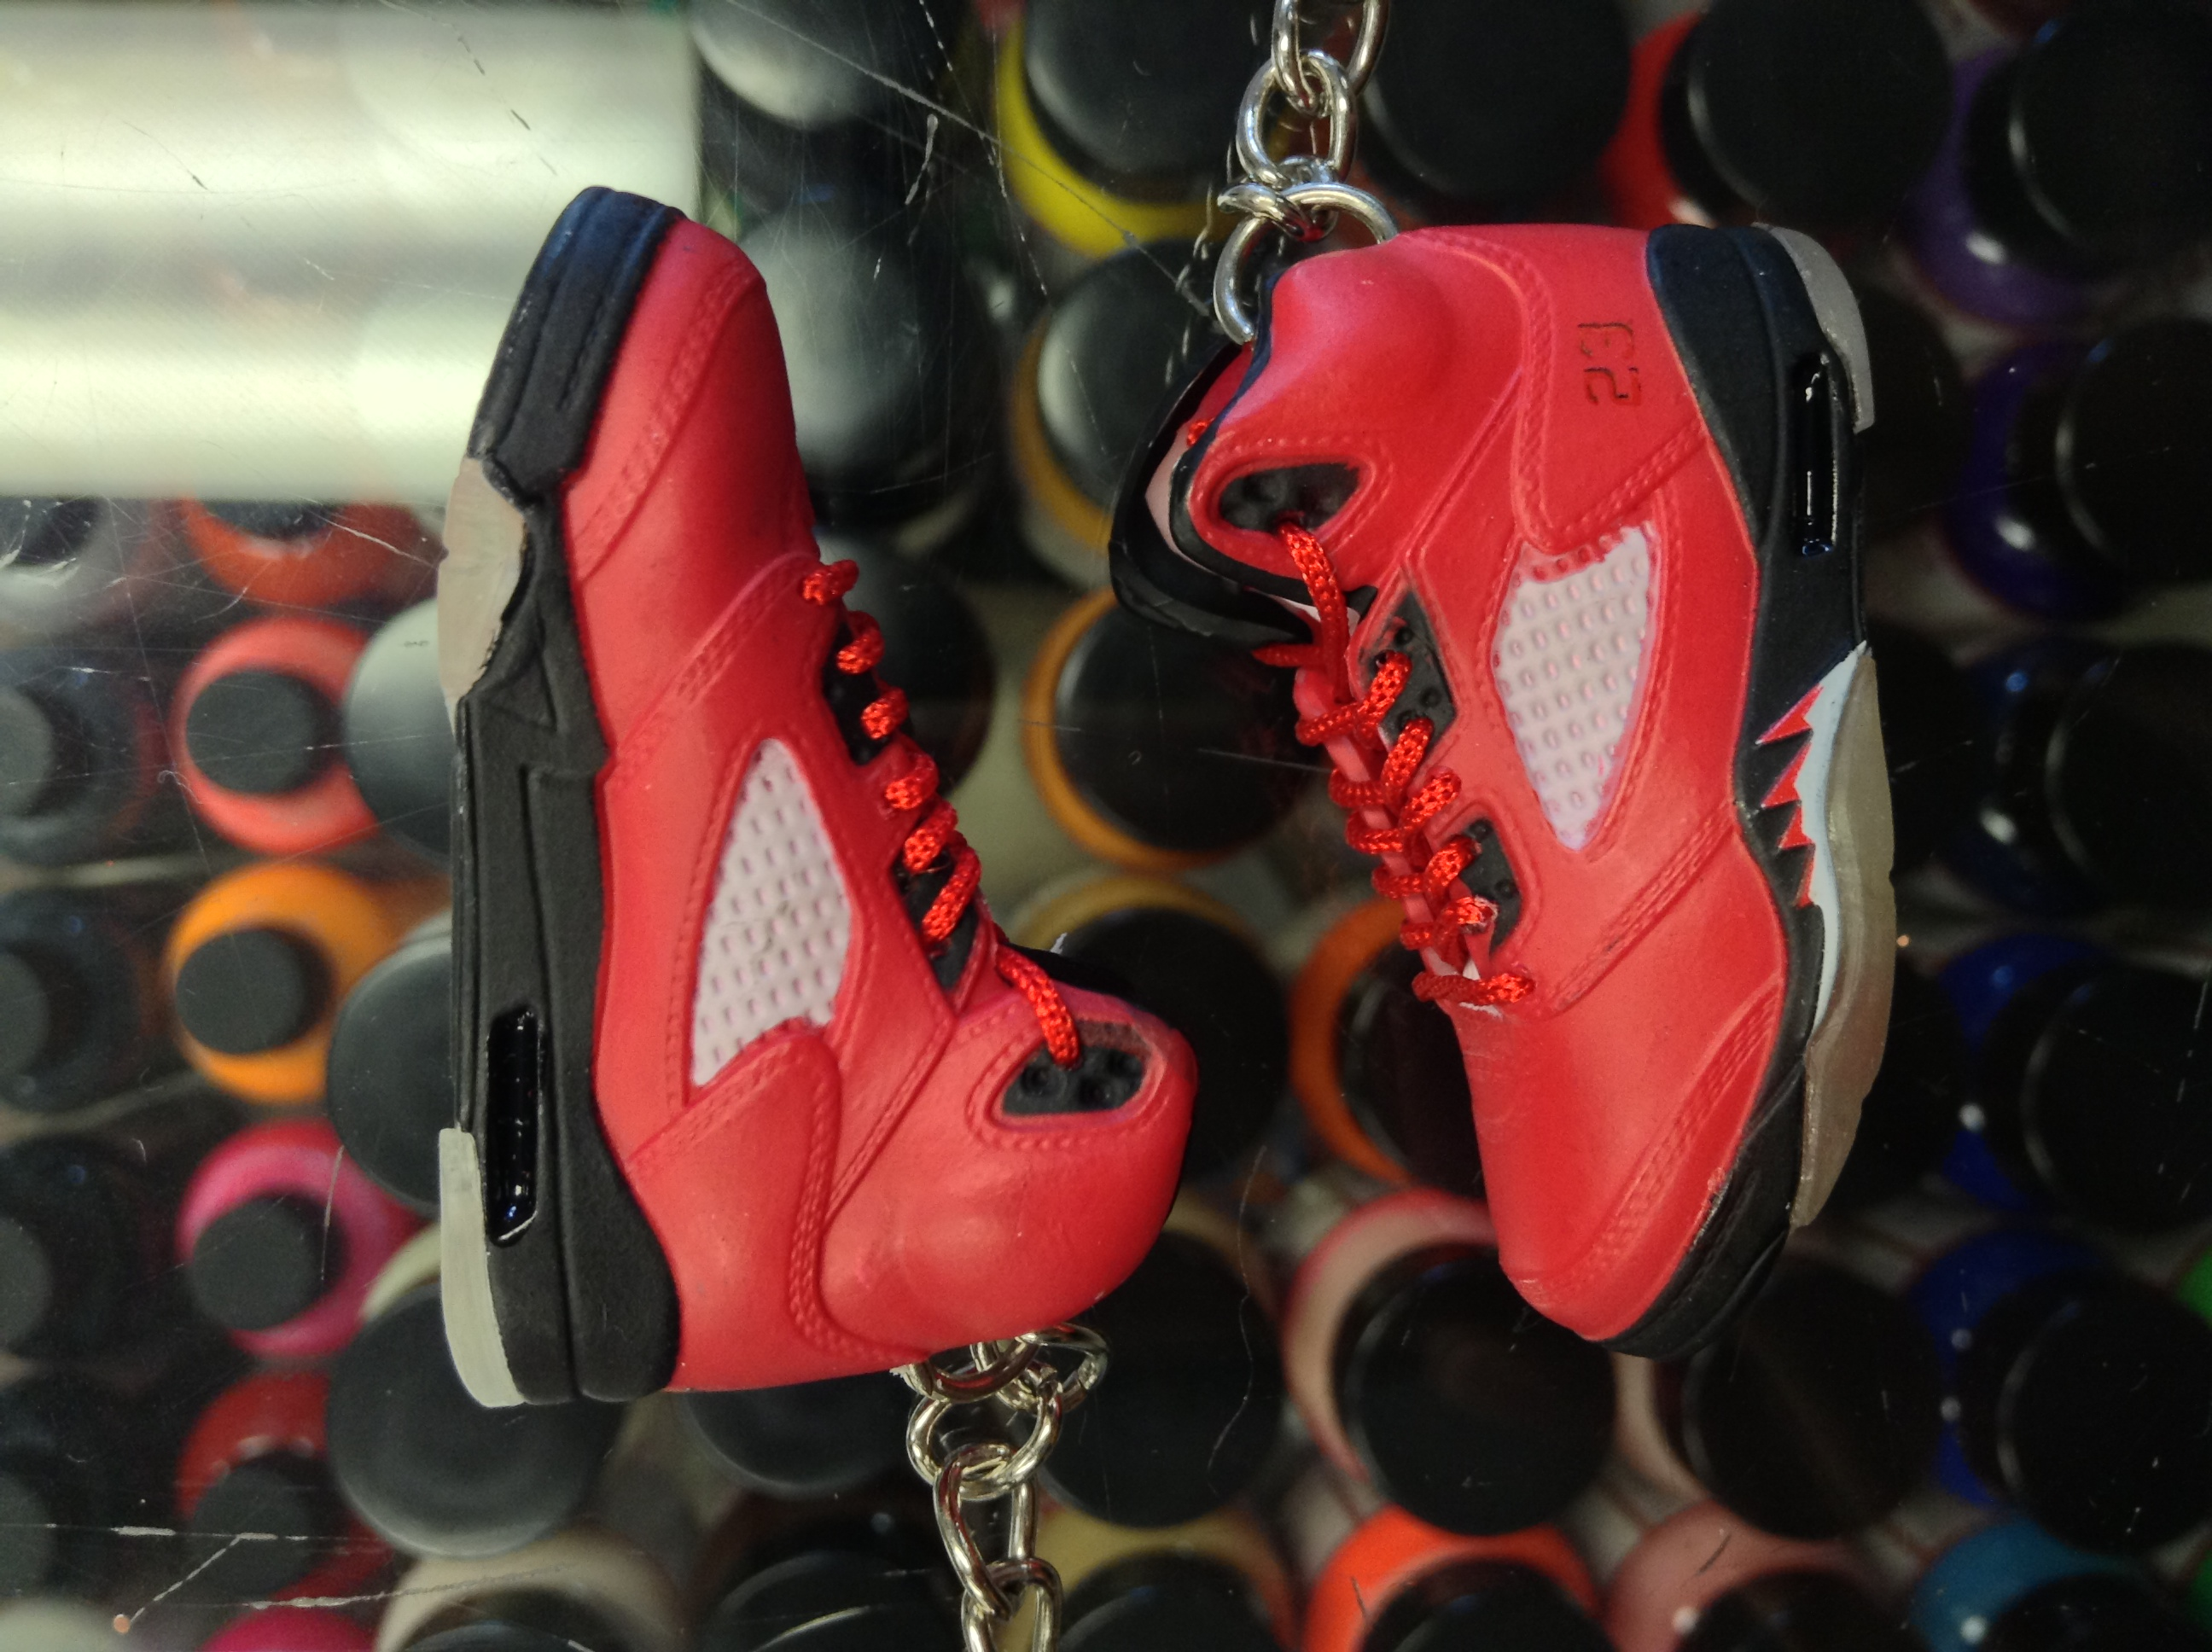 74f99235aa3 Rubber Keychain 2009 Nike Air Jordan V Raging Bull Red Suede 3d Keychain |  Grailed